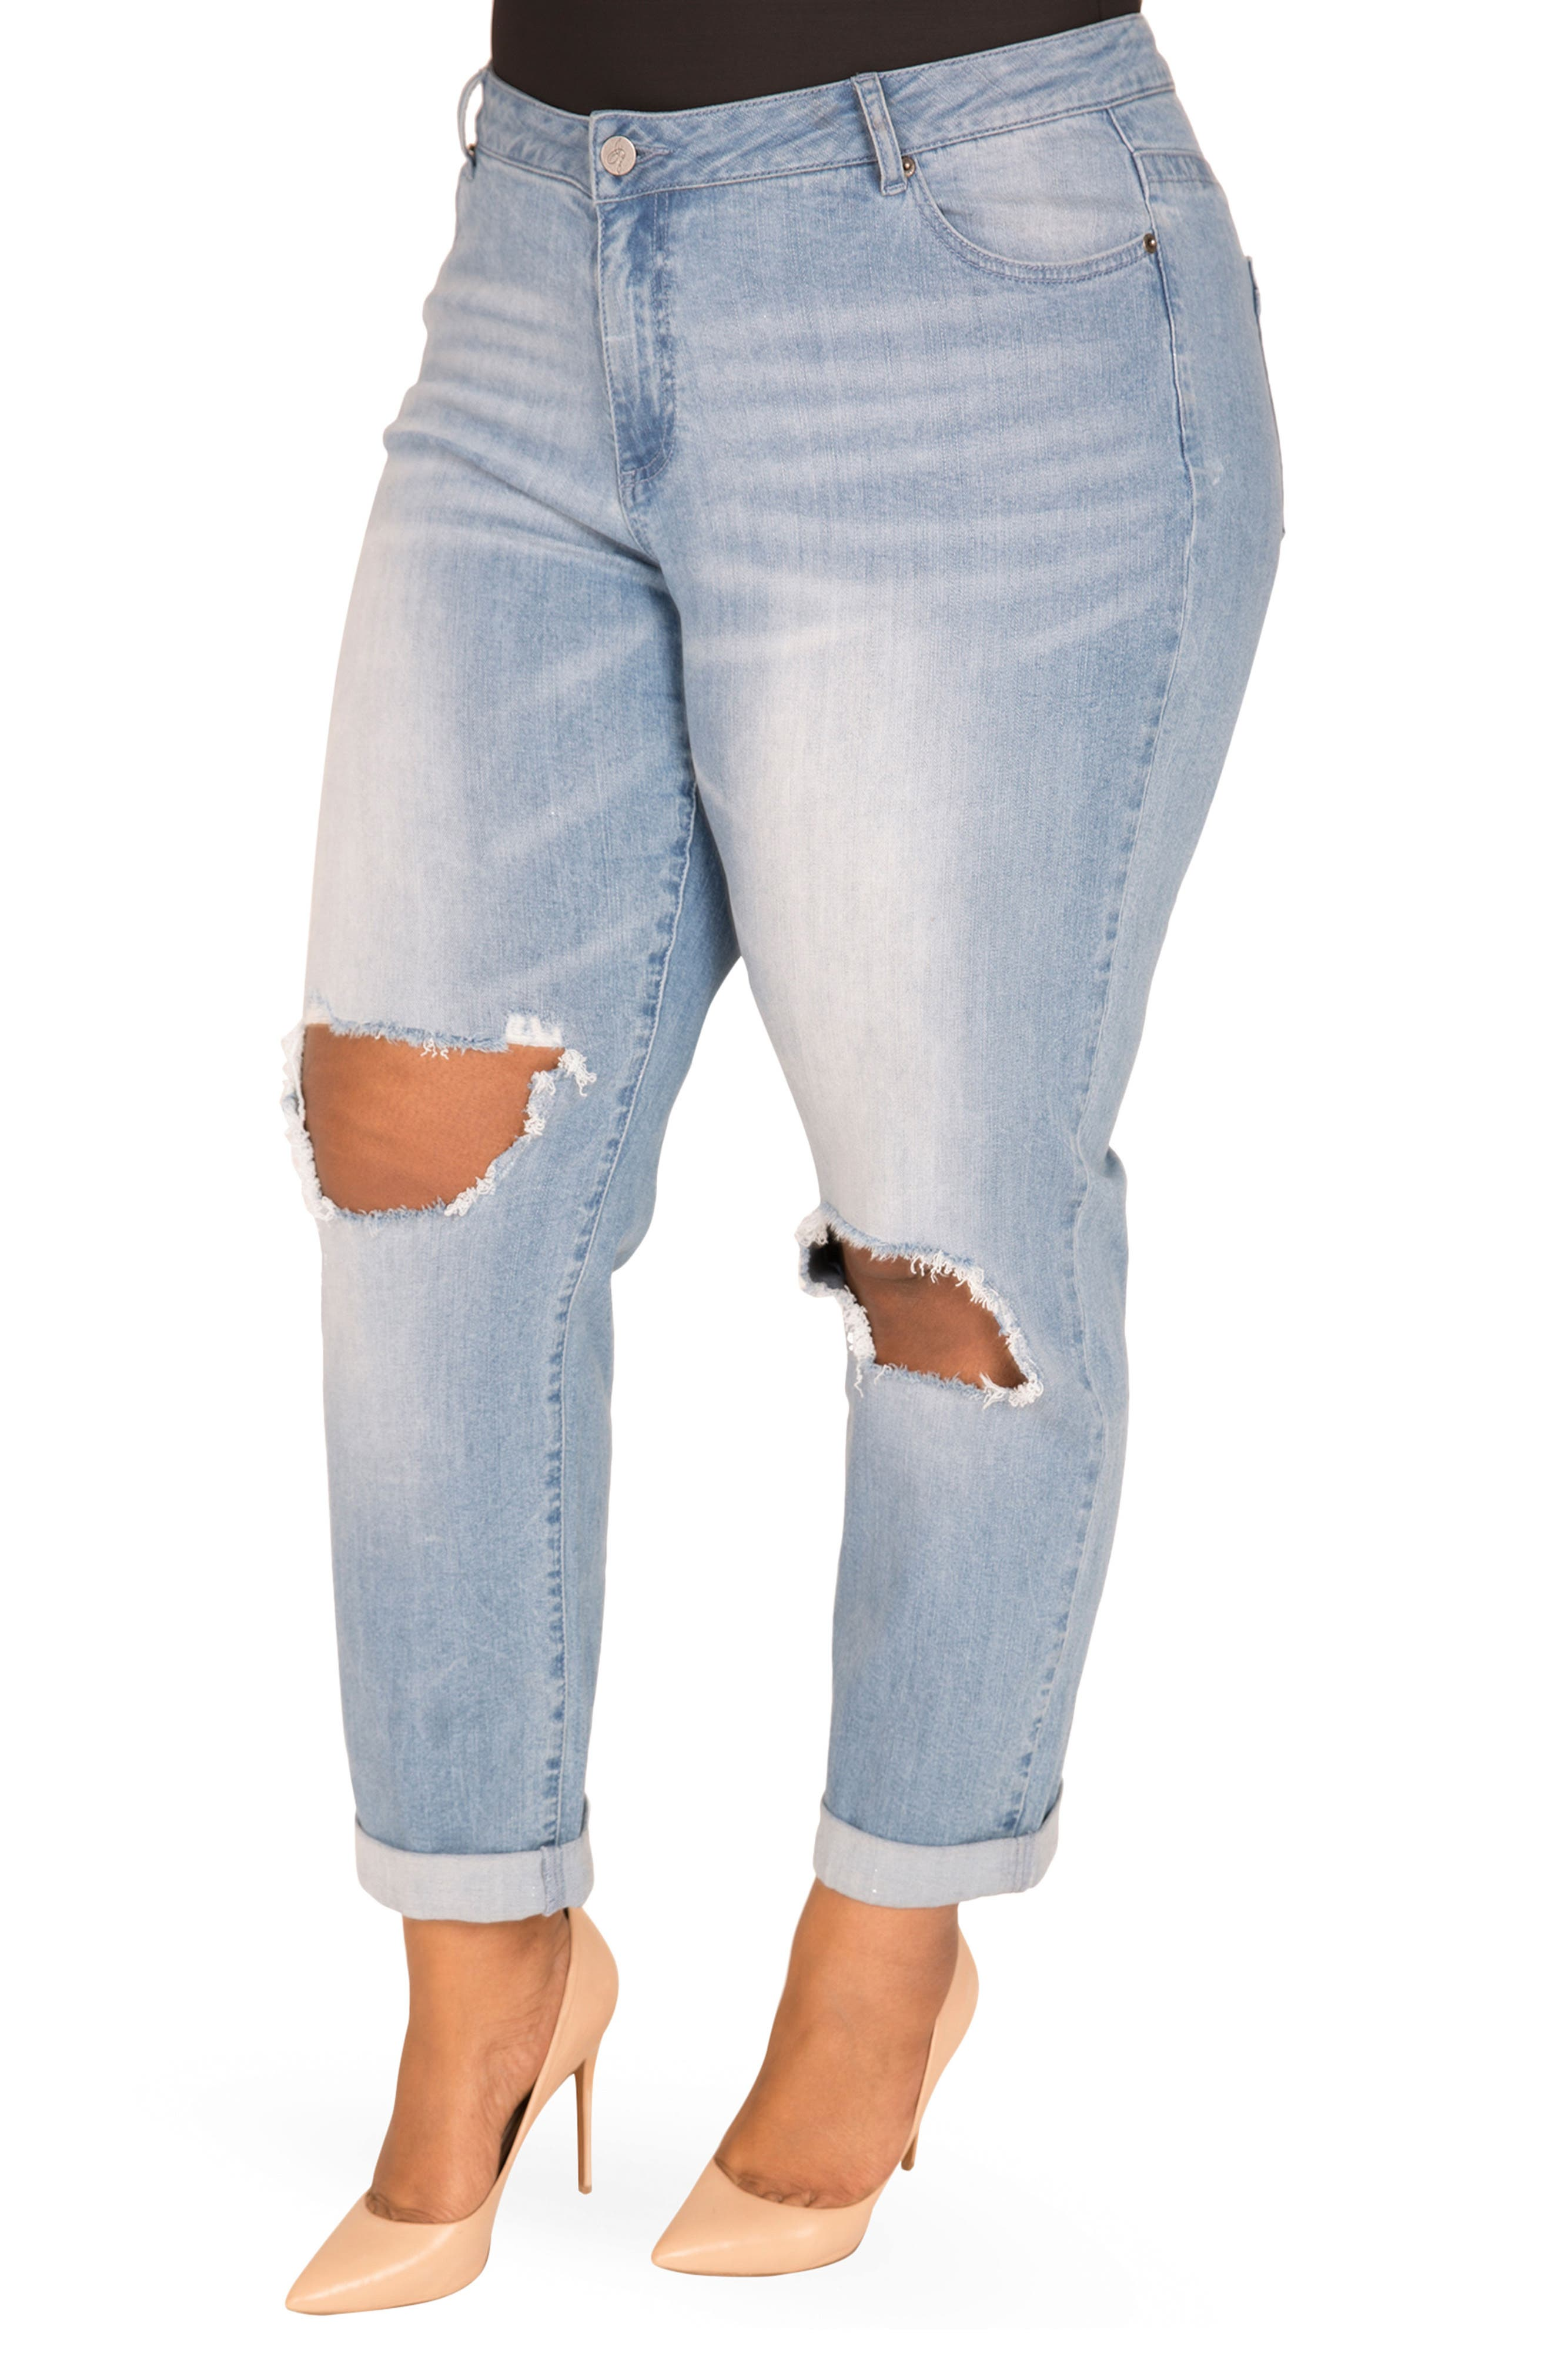 Verla Destroyed Boyfriend Jeans,                             Alternate thumbnail 3, color,                             LIGHT BLUE